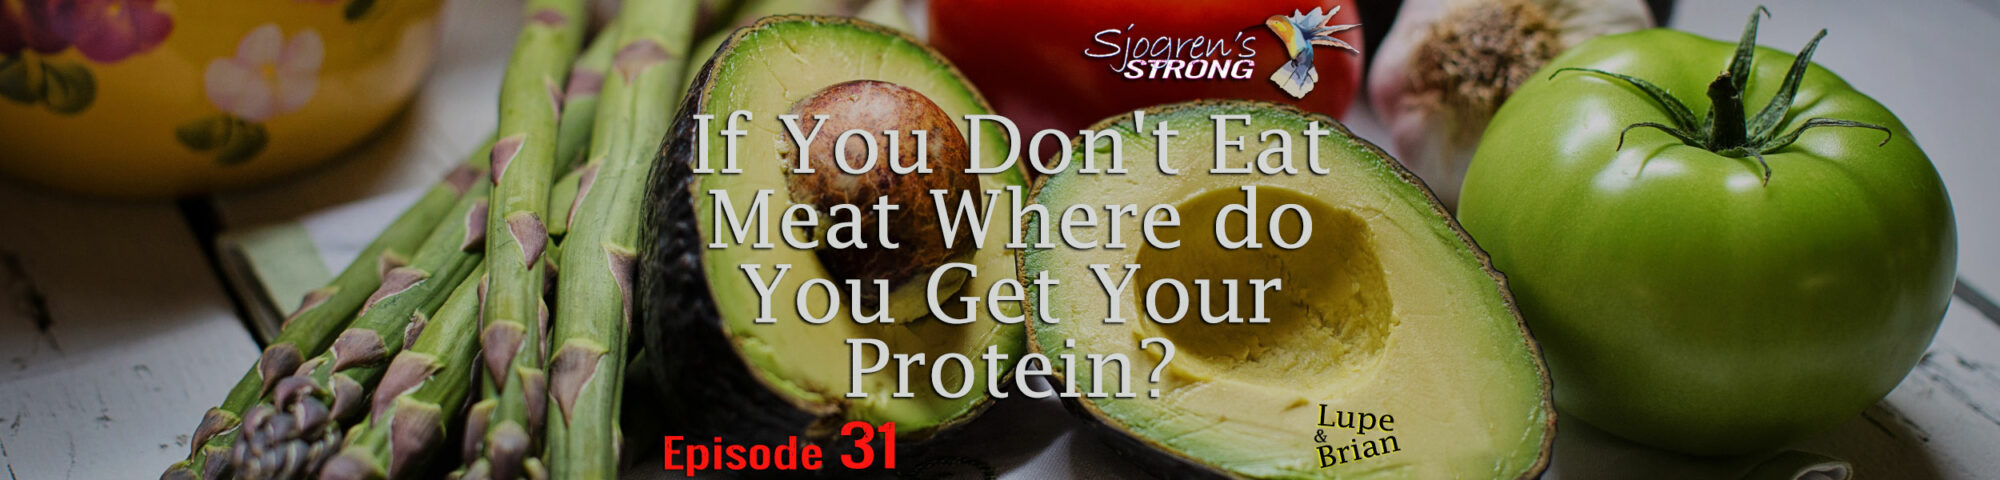 If You Don't Eat Meat Where do You Get Your Protein? Episode 31, Sjogren's Strong